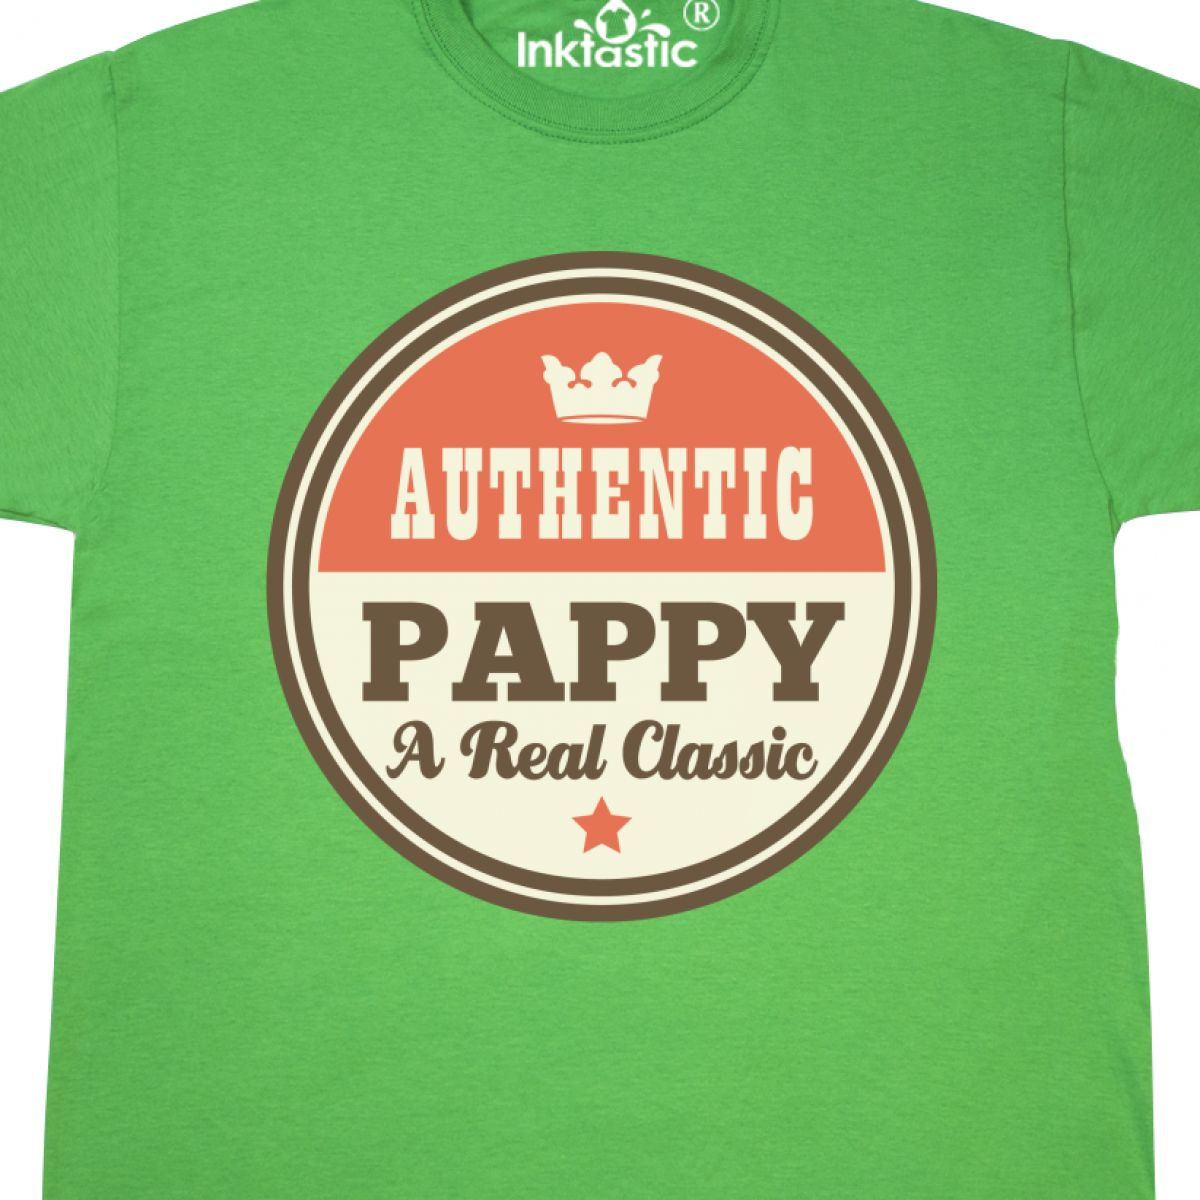 Inktastic Pappy Real Classic T-Shirt Grandpa Dad Fathers Day Family Vintage Gift